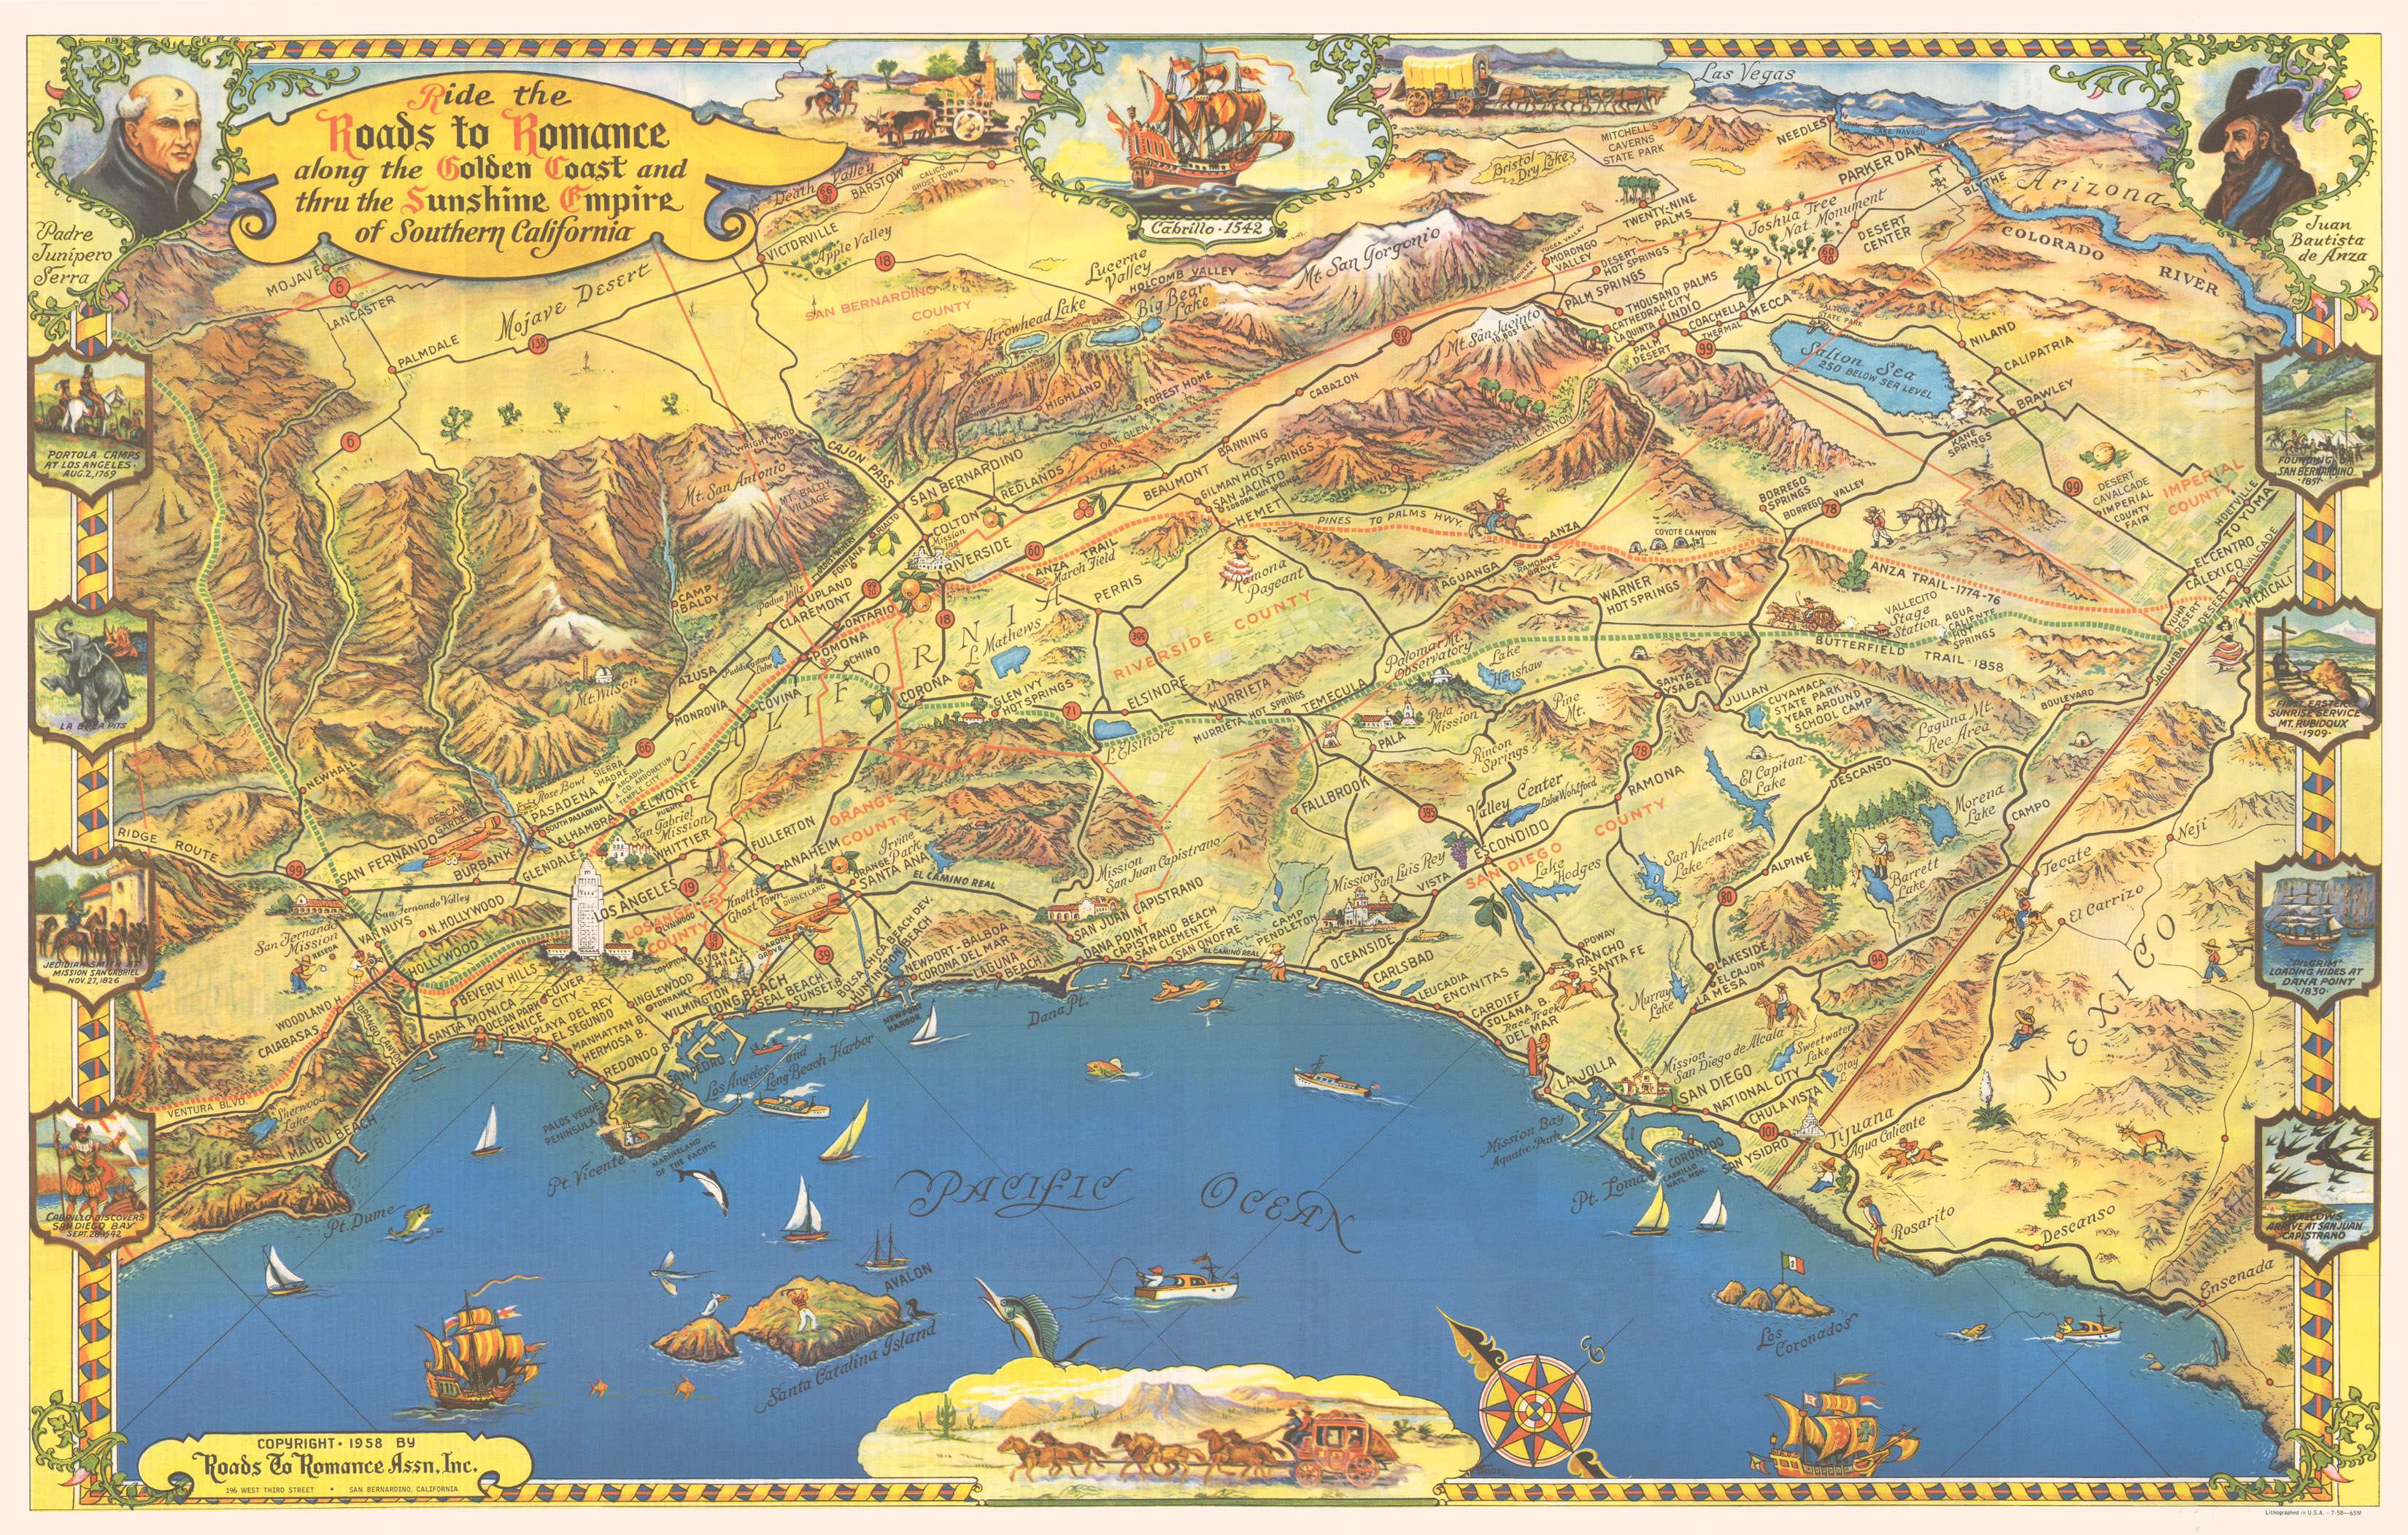 Ride The Roads To Romance Along The Golden Coast And Thru The - High resolution us road map